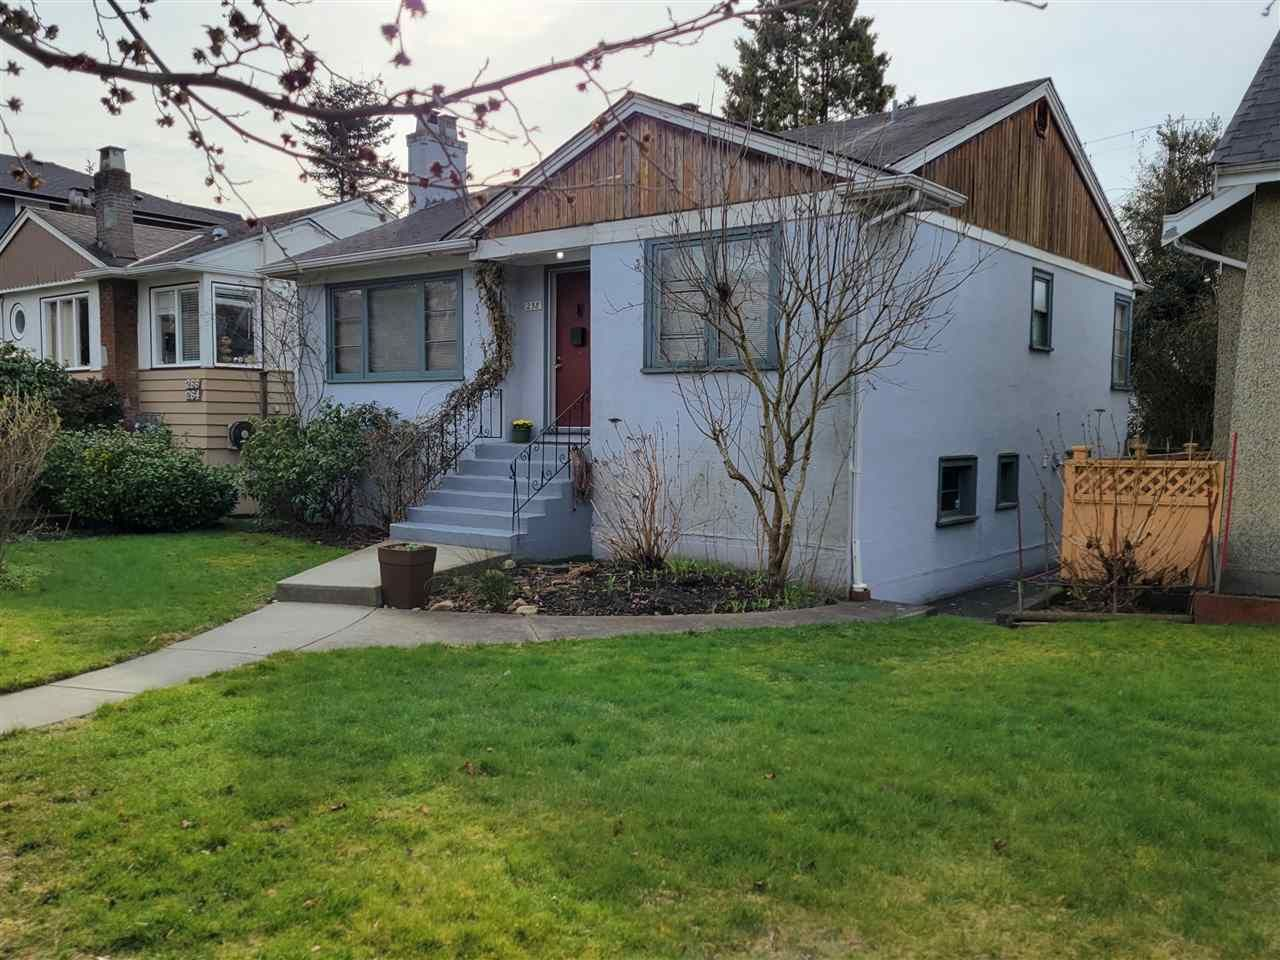 """Main Photo: 258 E 37 Avenue in Vancouver: Main House for sale in """"Riley park"""" (Vancouver East)  : MLS®# R2546212"""